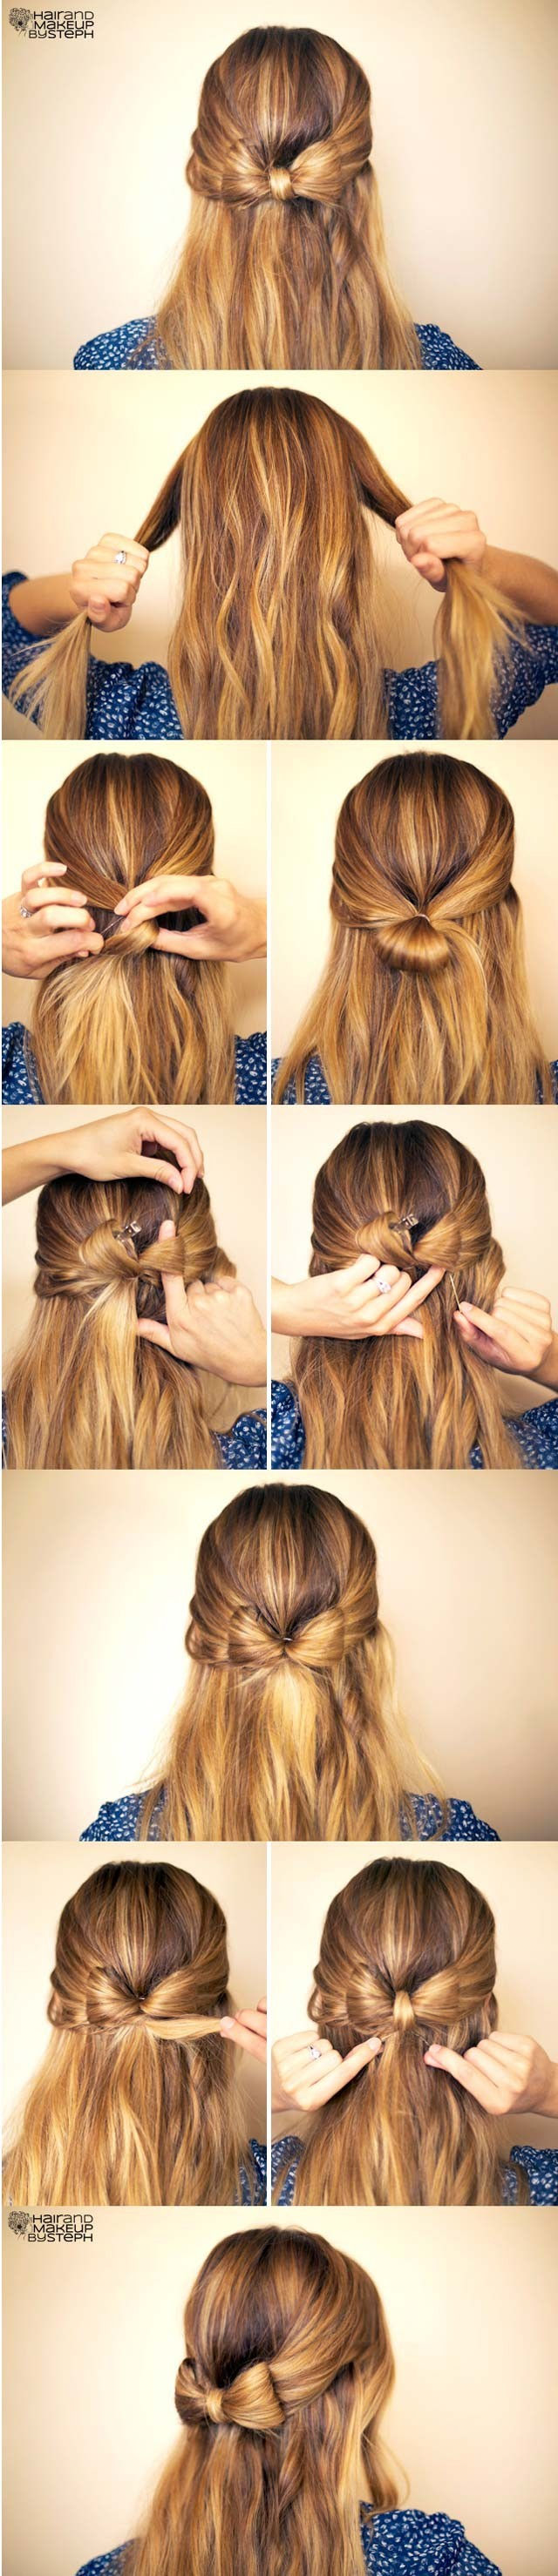 Perfect This Is A Super Pretty Hairstyle, That Totally Enhances A Casual Look Now, Lets